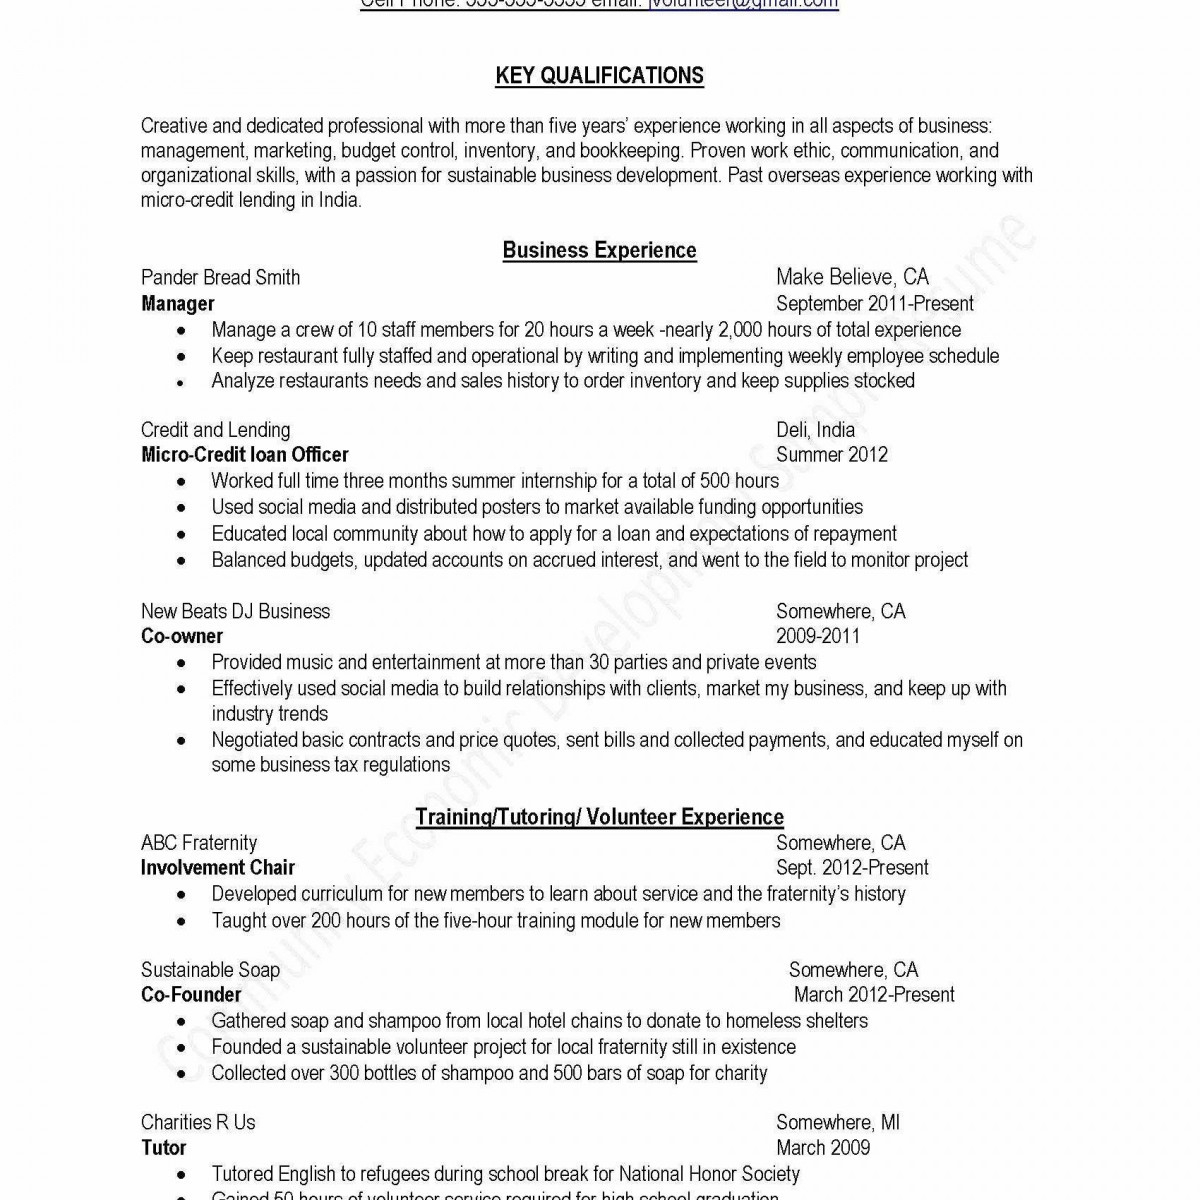 Resume Email Address - How to Send A Resume by Email Dazzling Leadership Skills Resume New